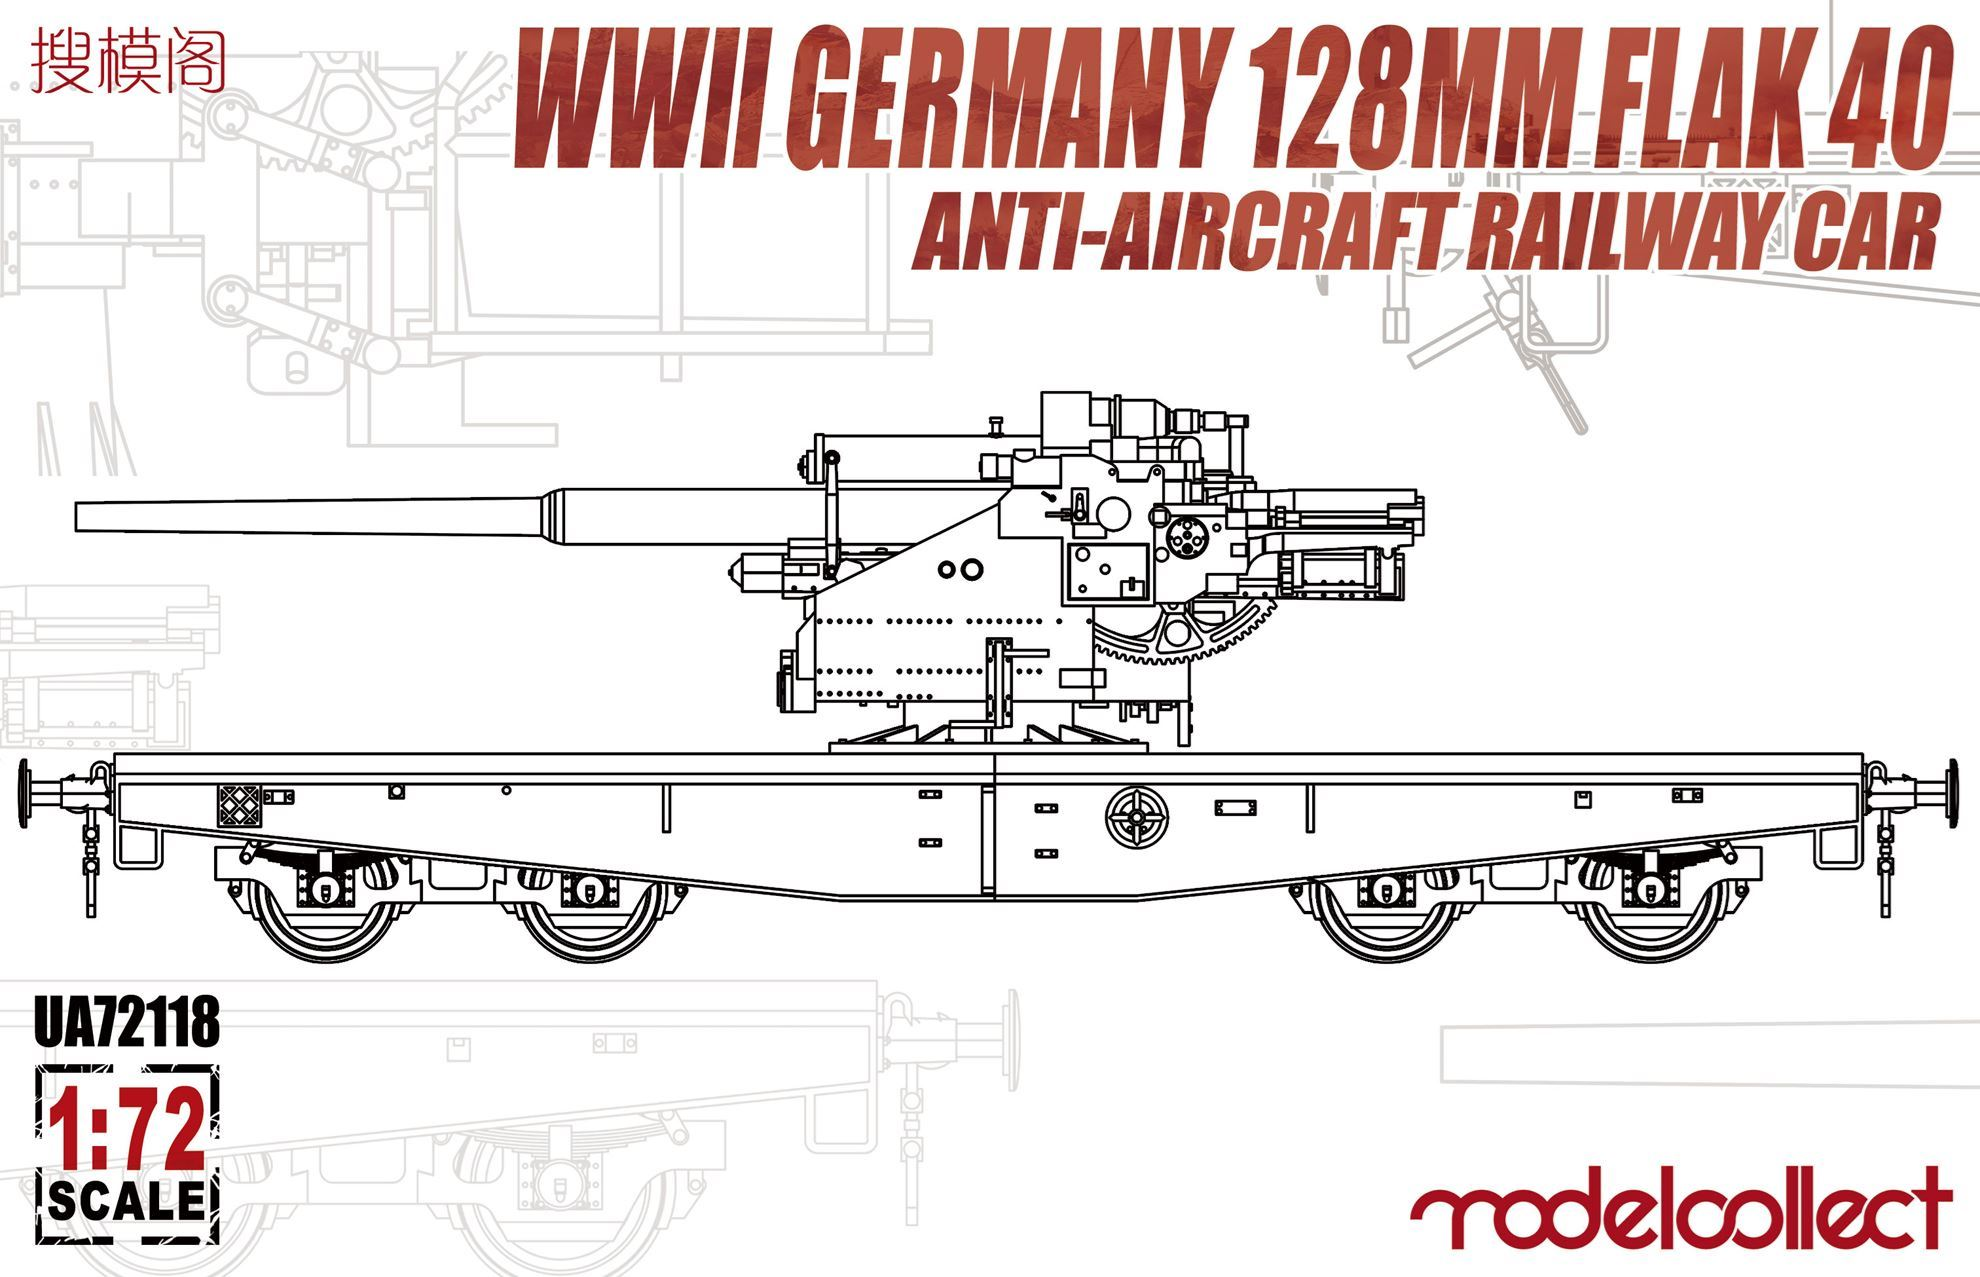 ModelCollect WWII Germany 128mm Flak 40 Anti-Aircraft Railway Car